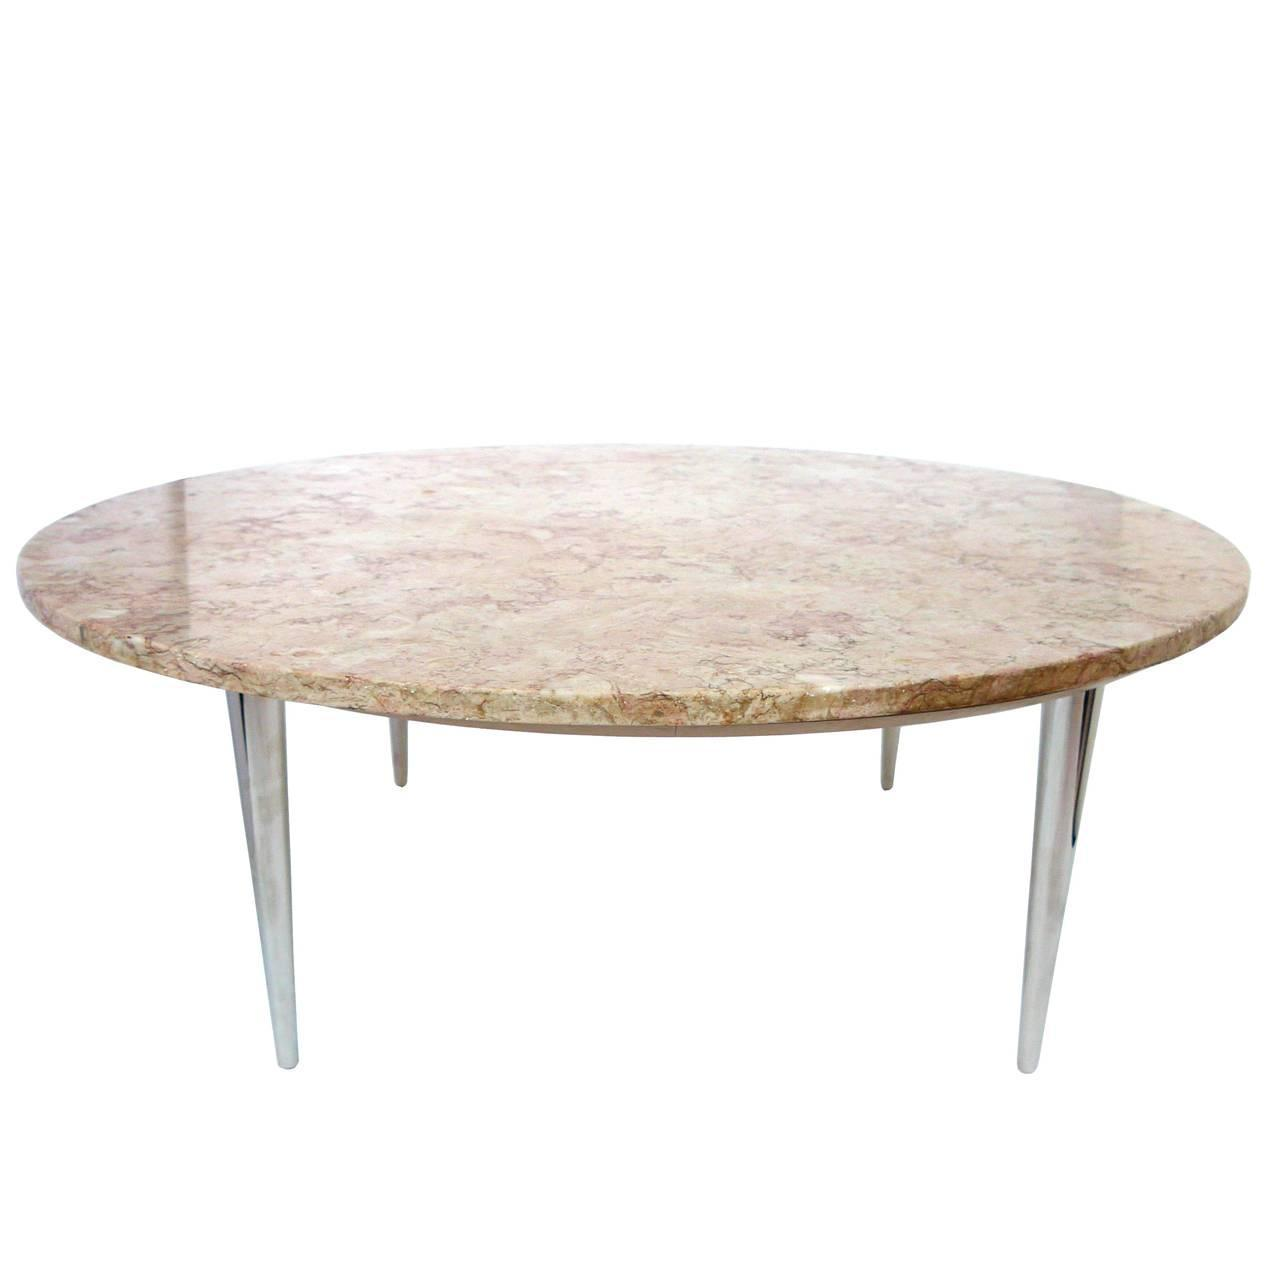 Midcentury Weiman Round Travertine Cocktail Table At 1stdibs